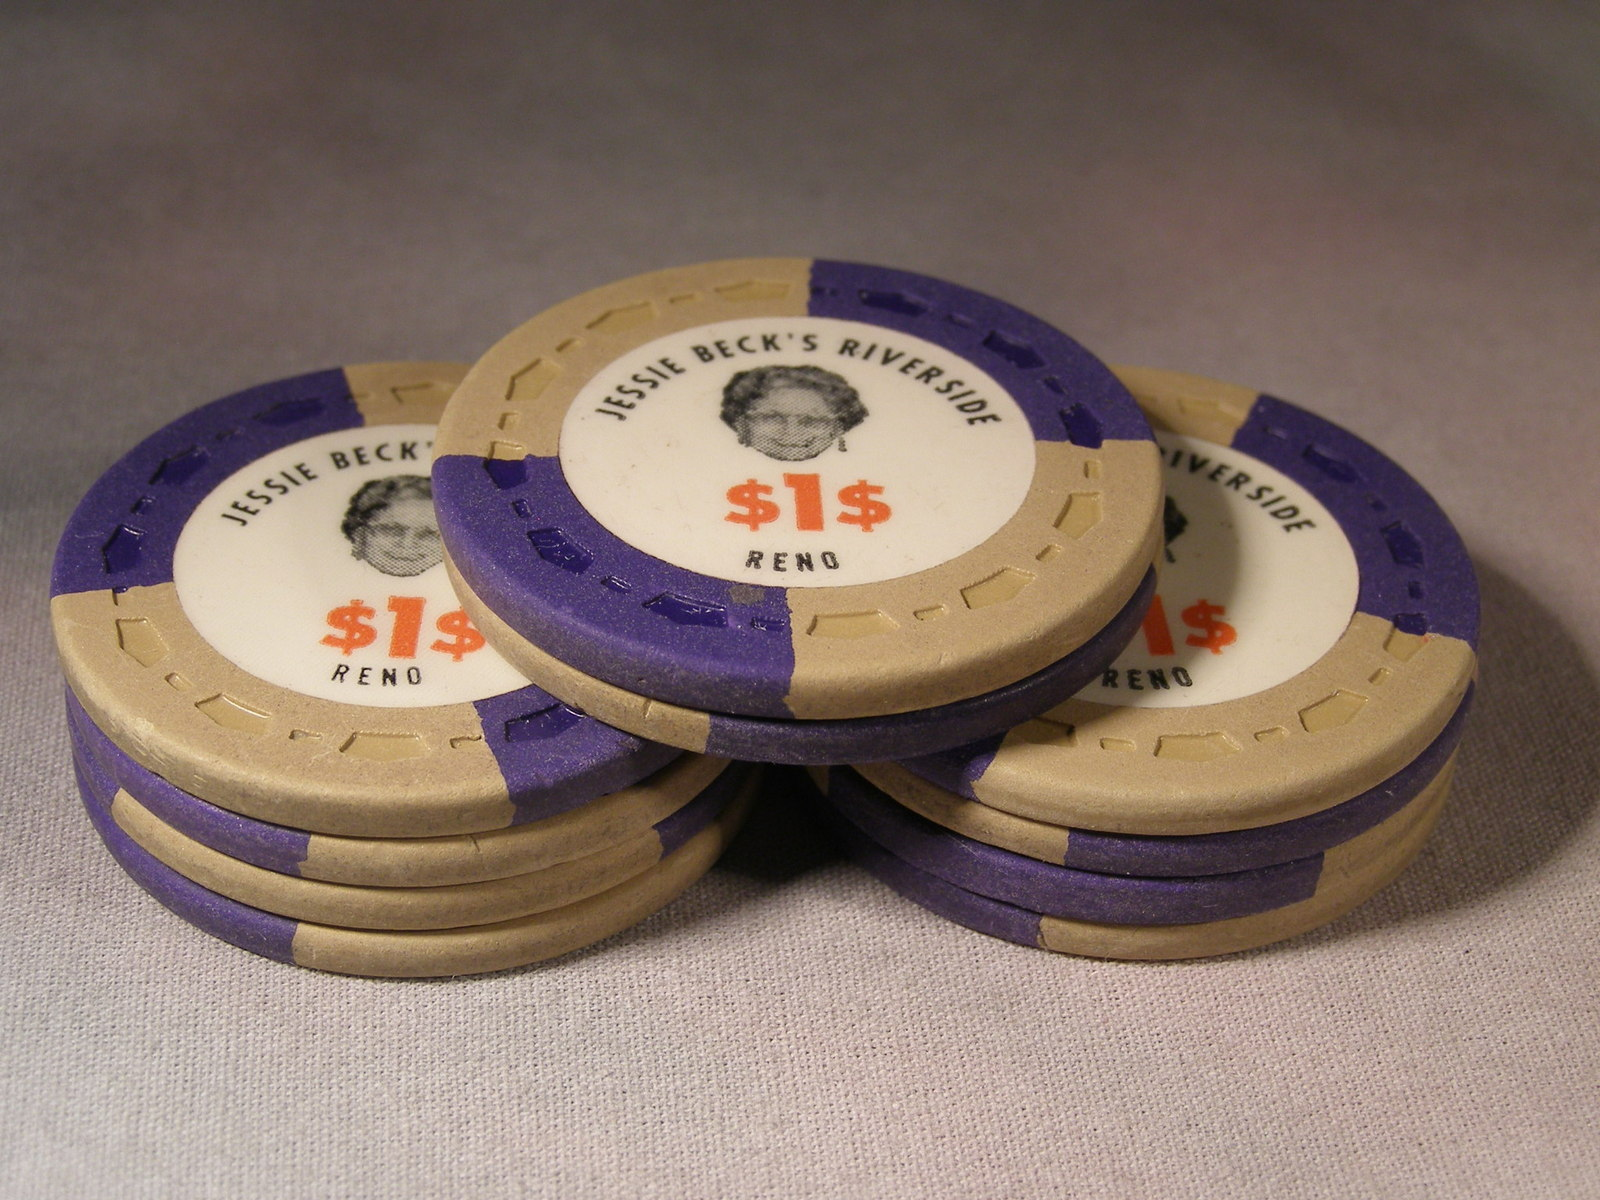 Primary image for Ten $1.00 Casino Chips From: Jessie Beck's Riverside Hotel & Casino - (sku#2094)